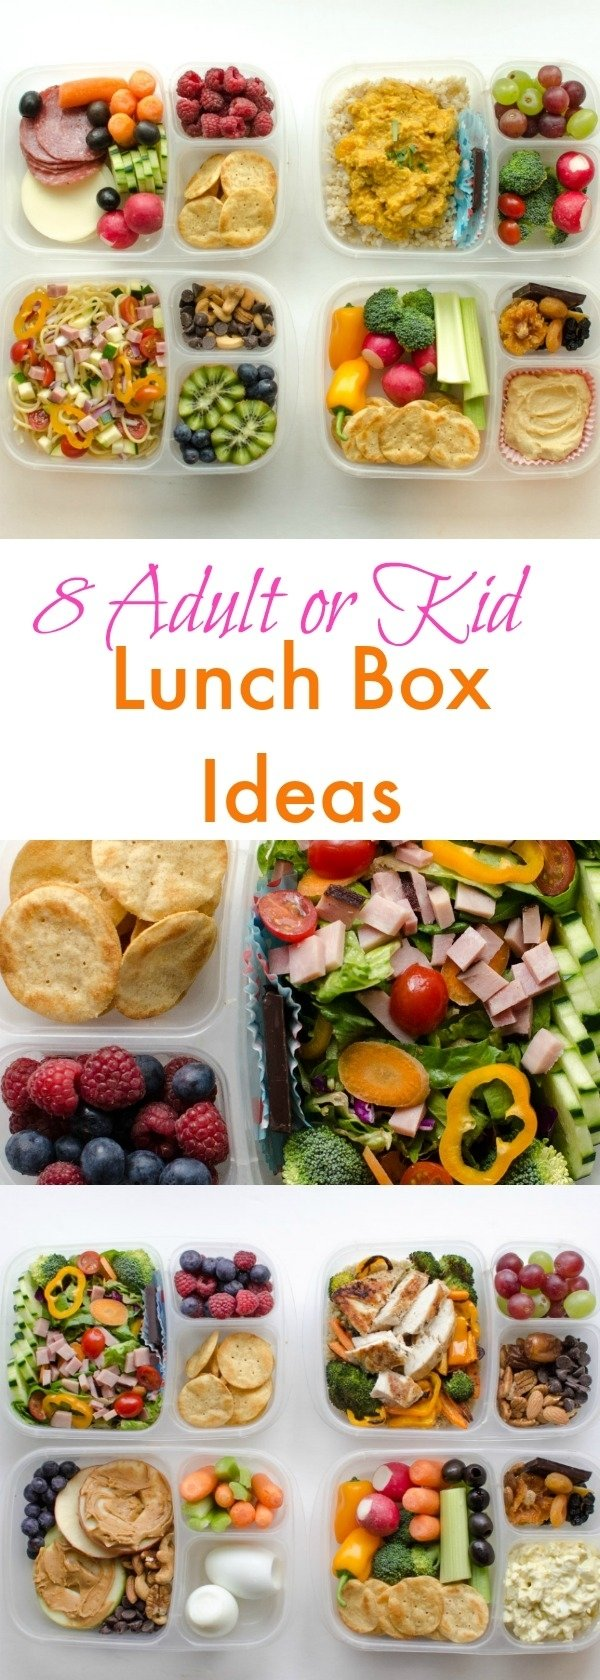 10 Elegant Diet Lunch Ideas For Work 8 adult lunch box ideas bless this mess 14 2020